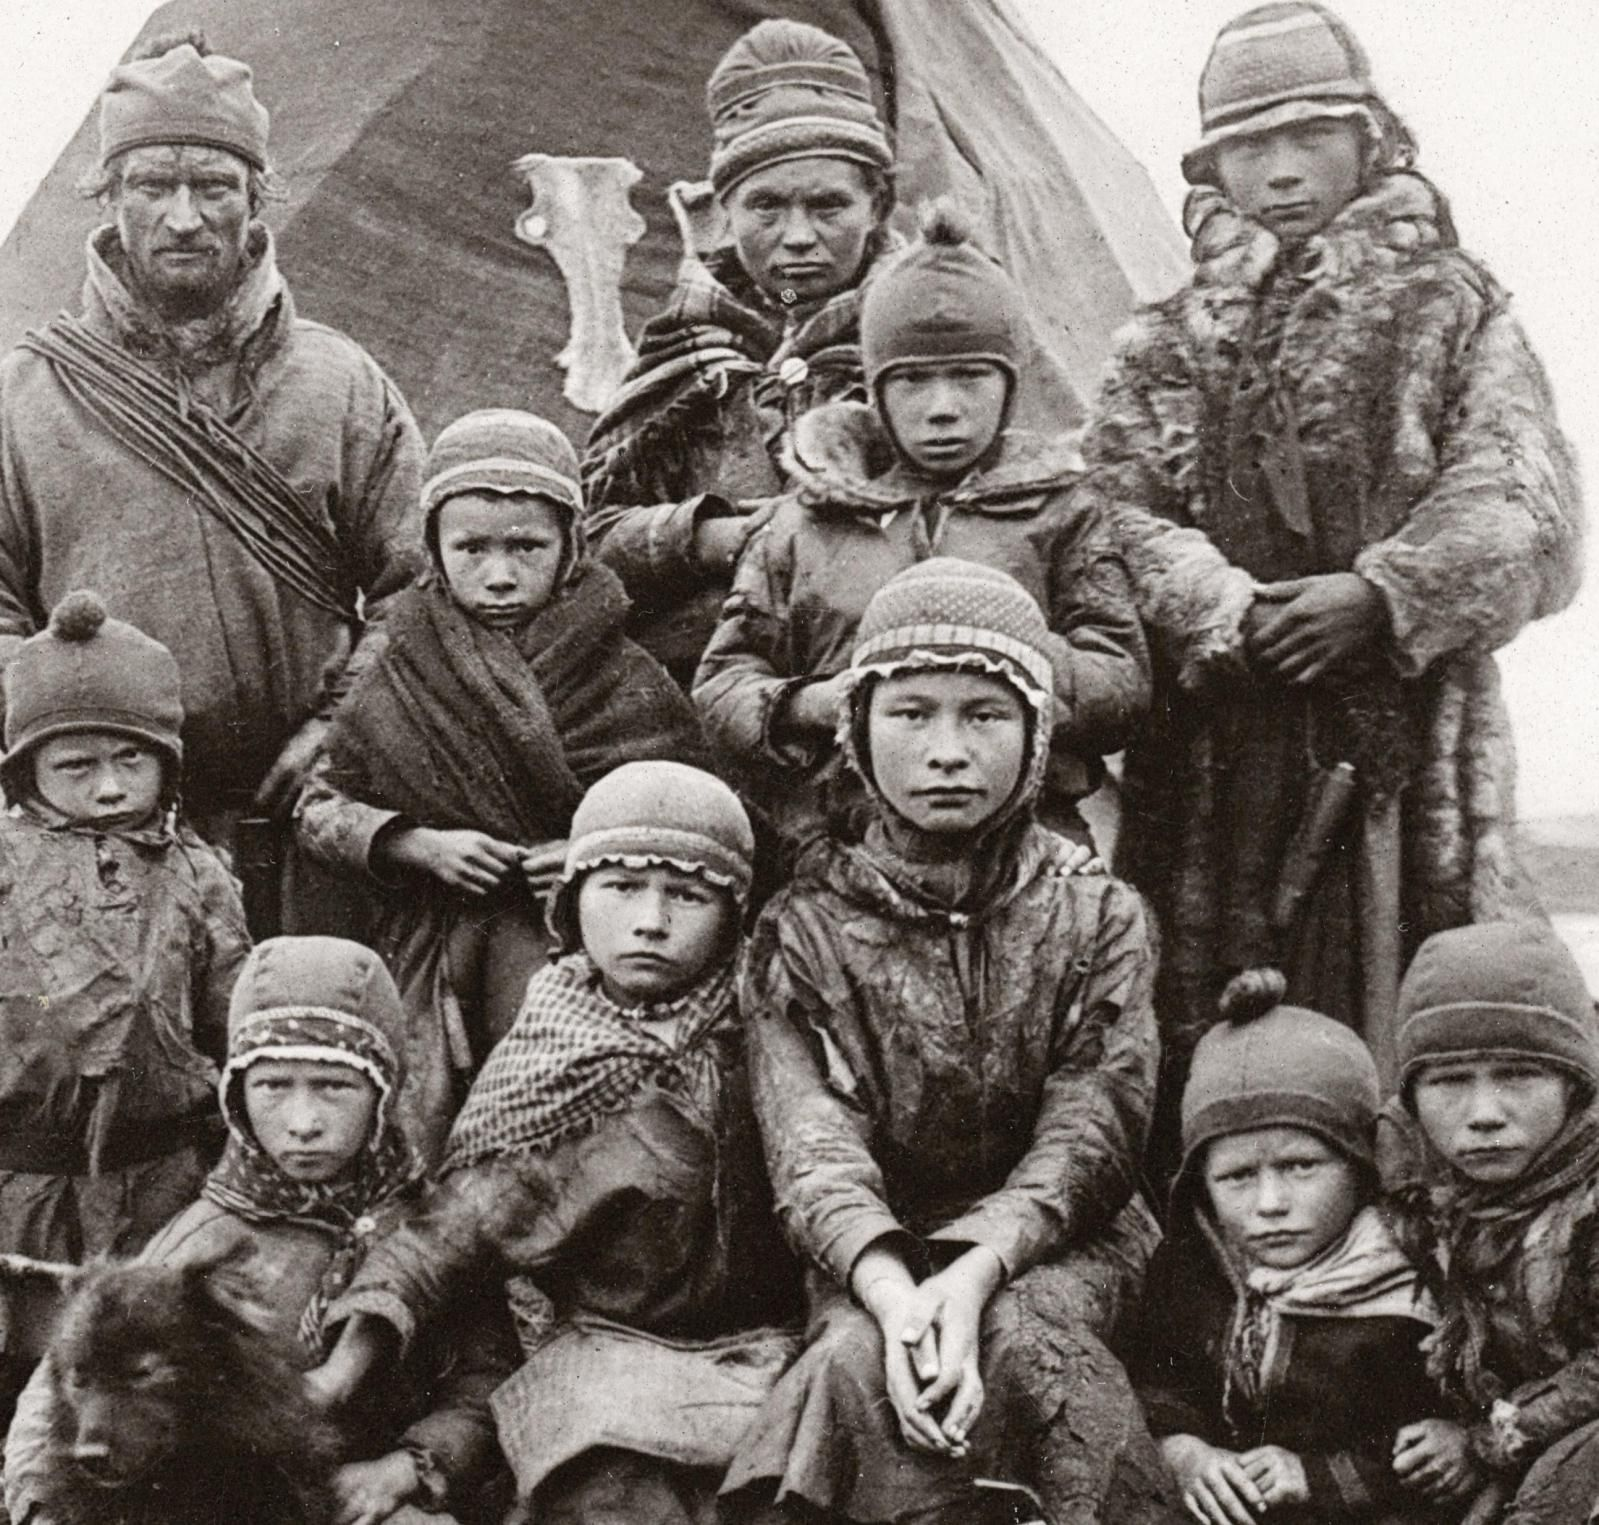 sami norway saami indigenous sweden norwegian finland northern north nomad arctic nordland nordic russia culture inuit tribes sami early interesting